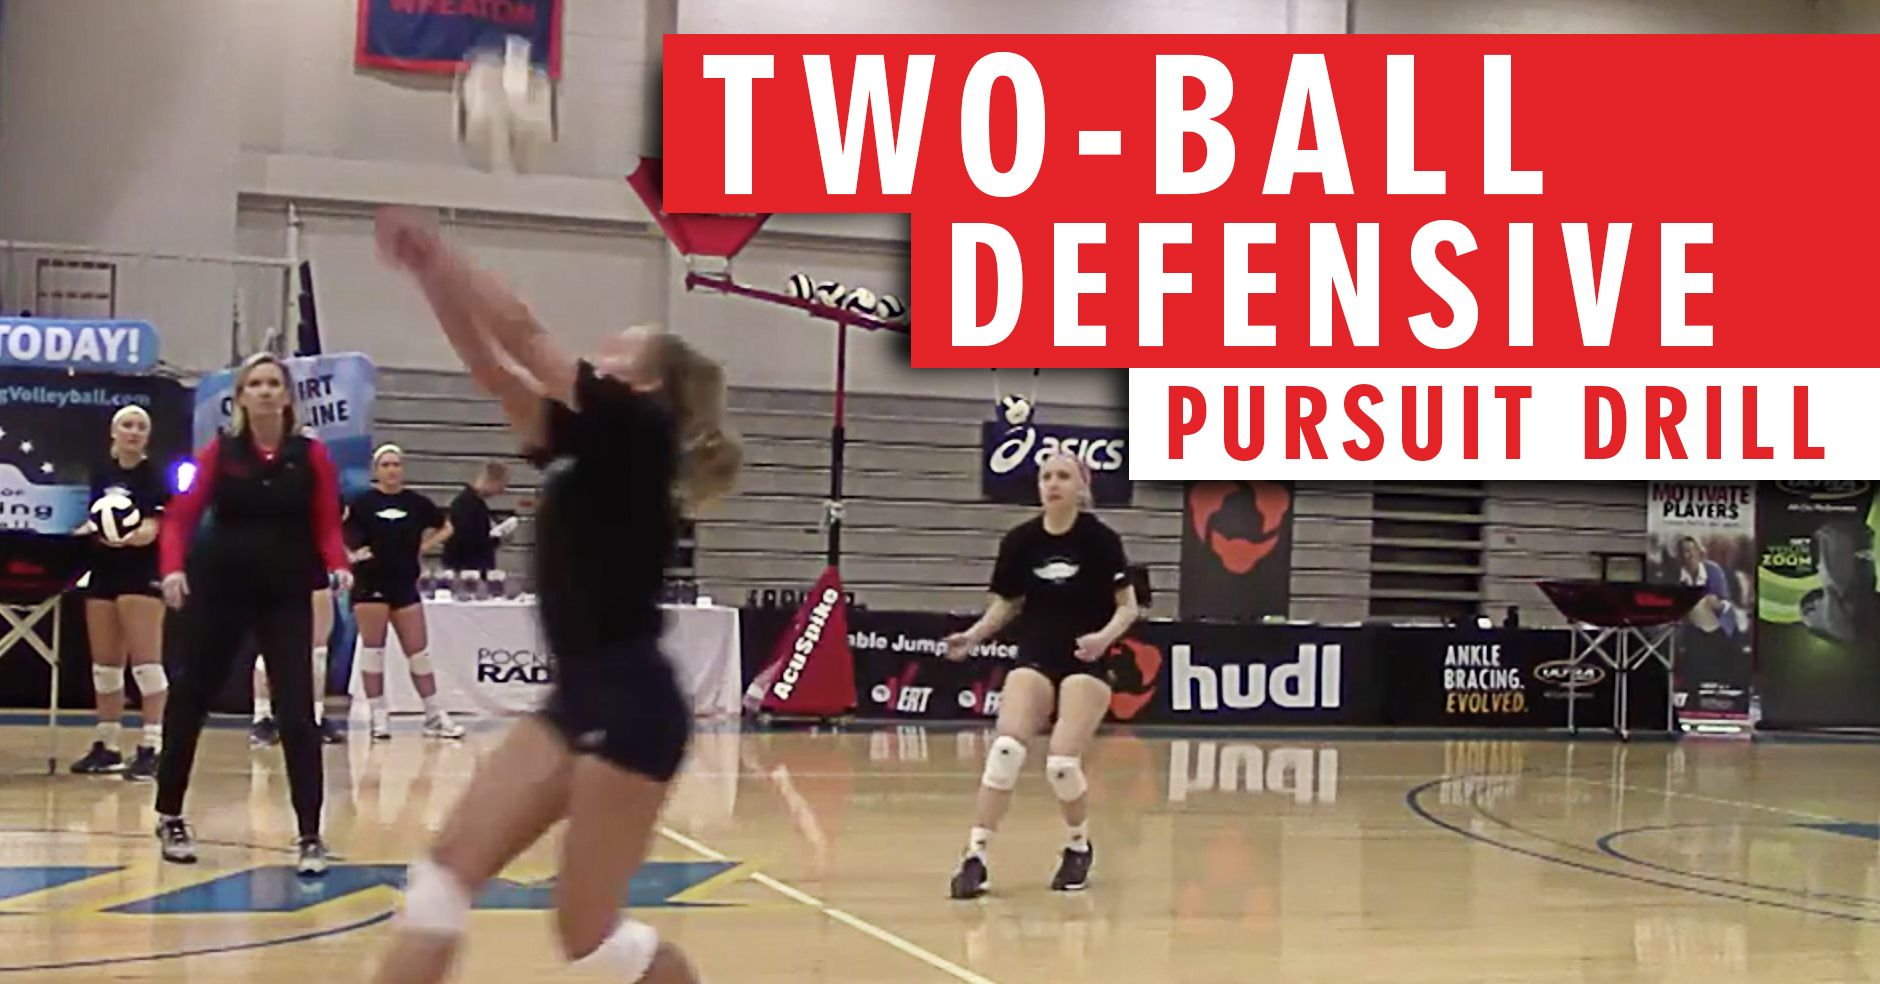 Two Ball Defensive Pursuit Drill Coaching Volleyball Volleyball Training Volleyball Drills